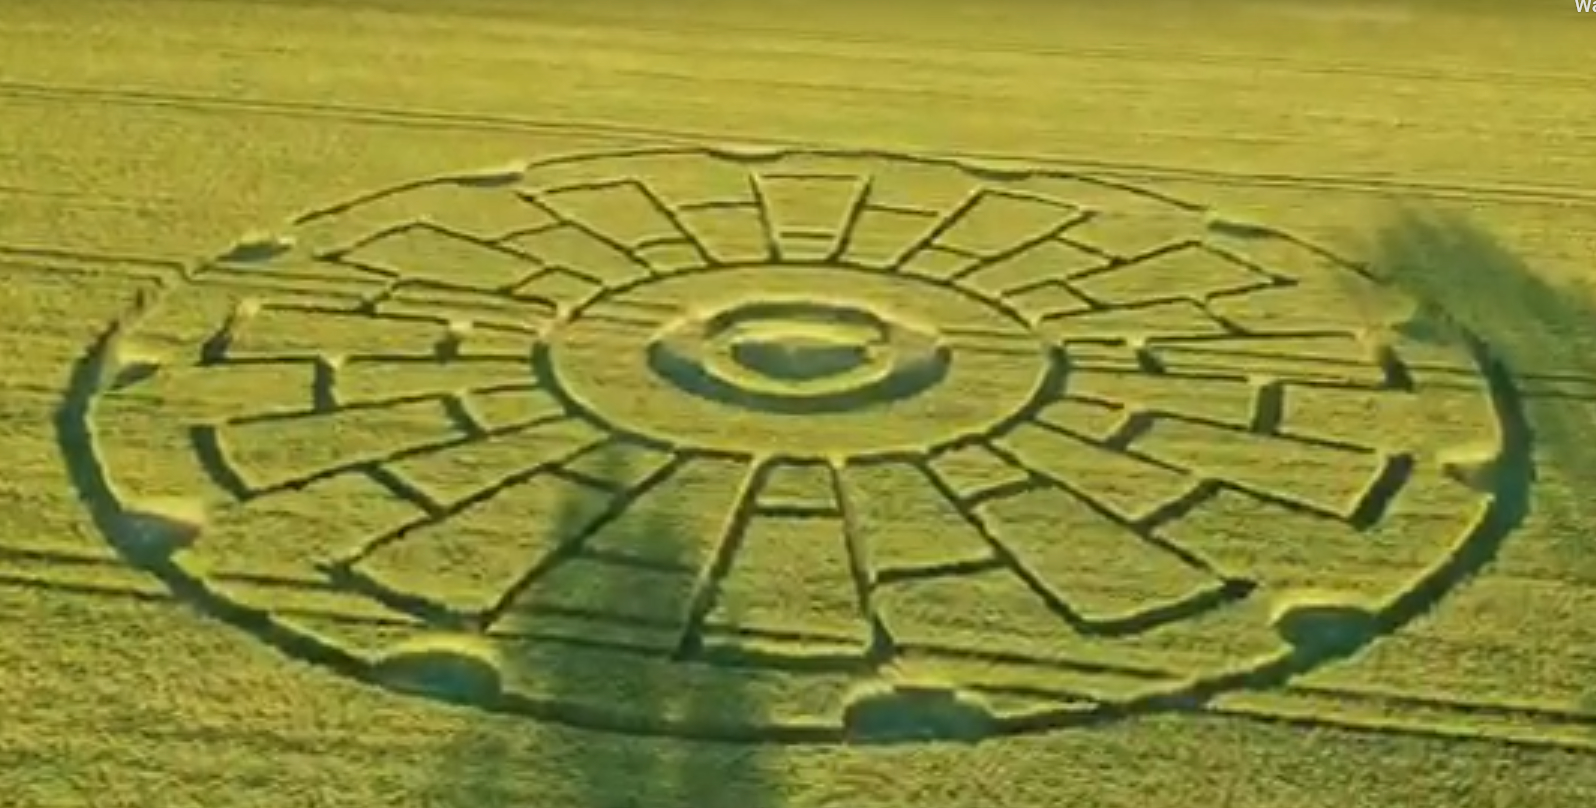 New Crop Circle Found In Lauragais, France -31st May 2020